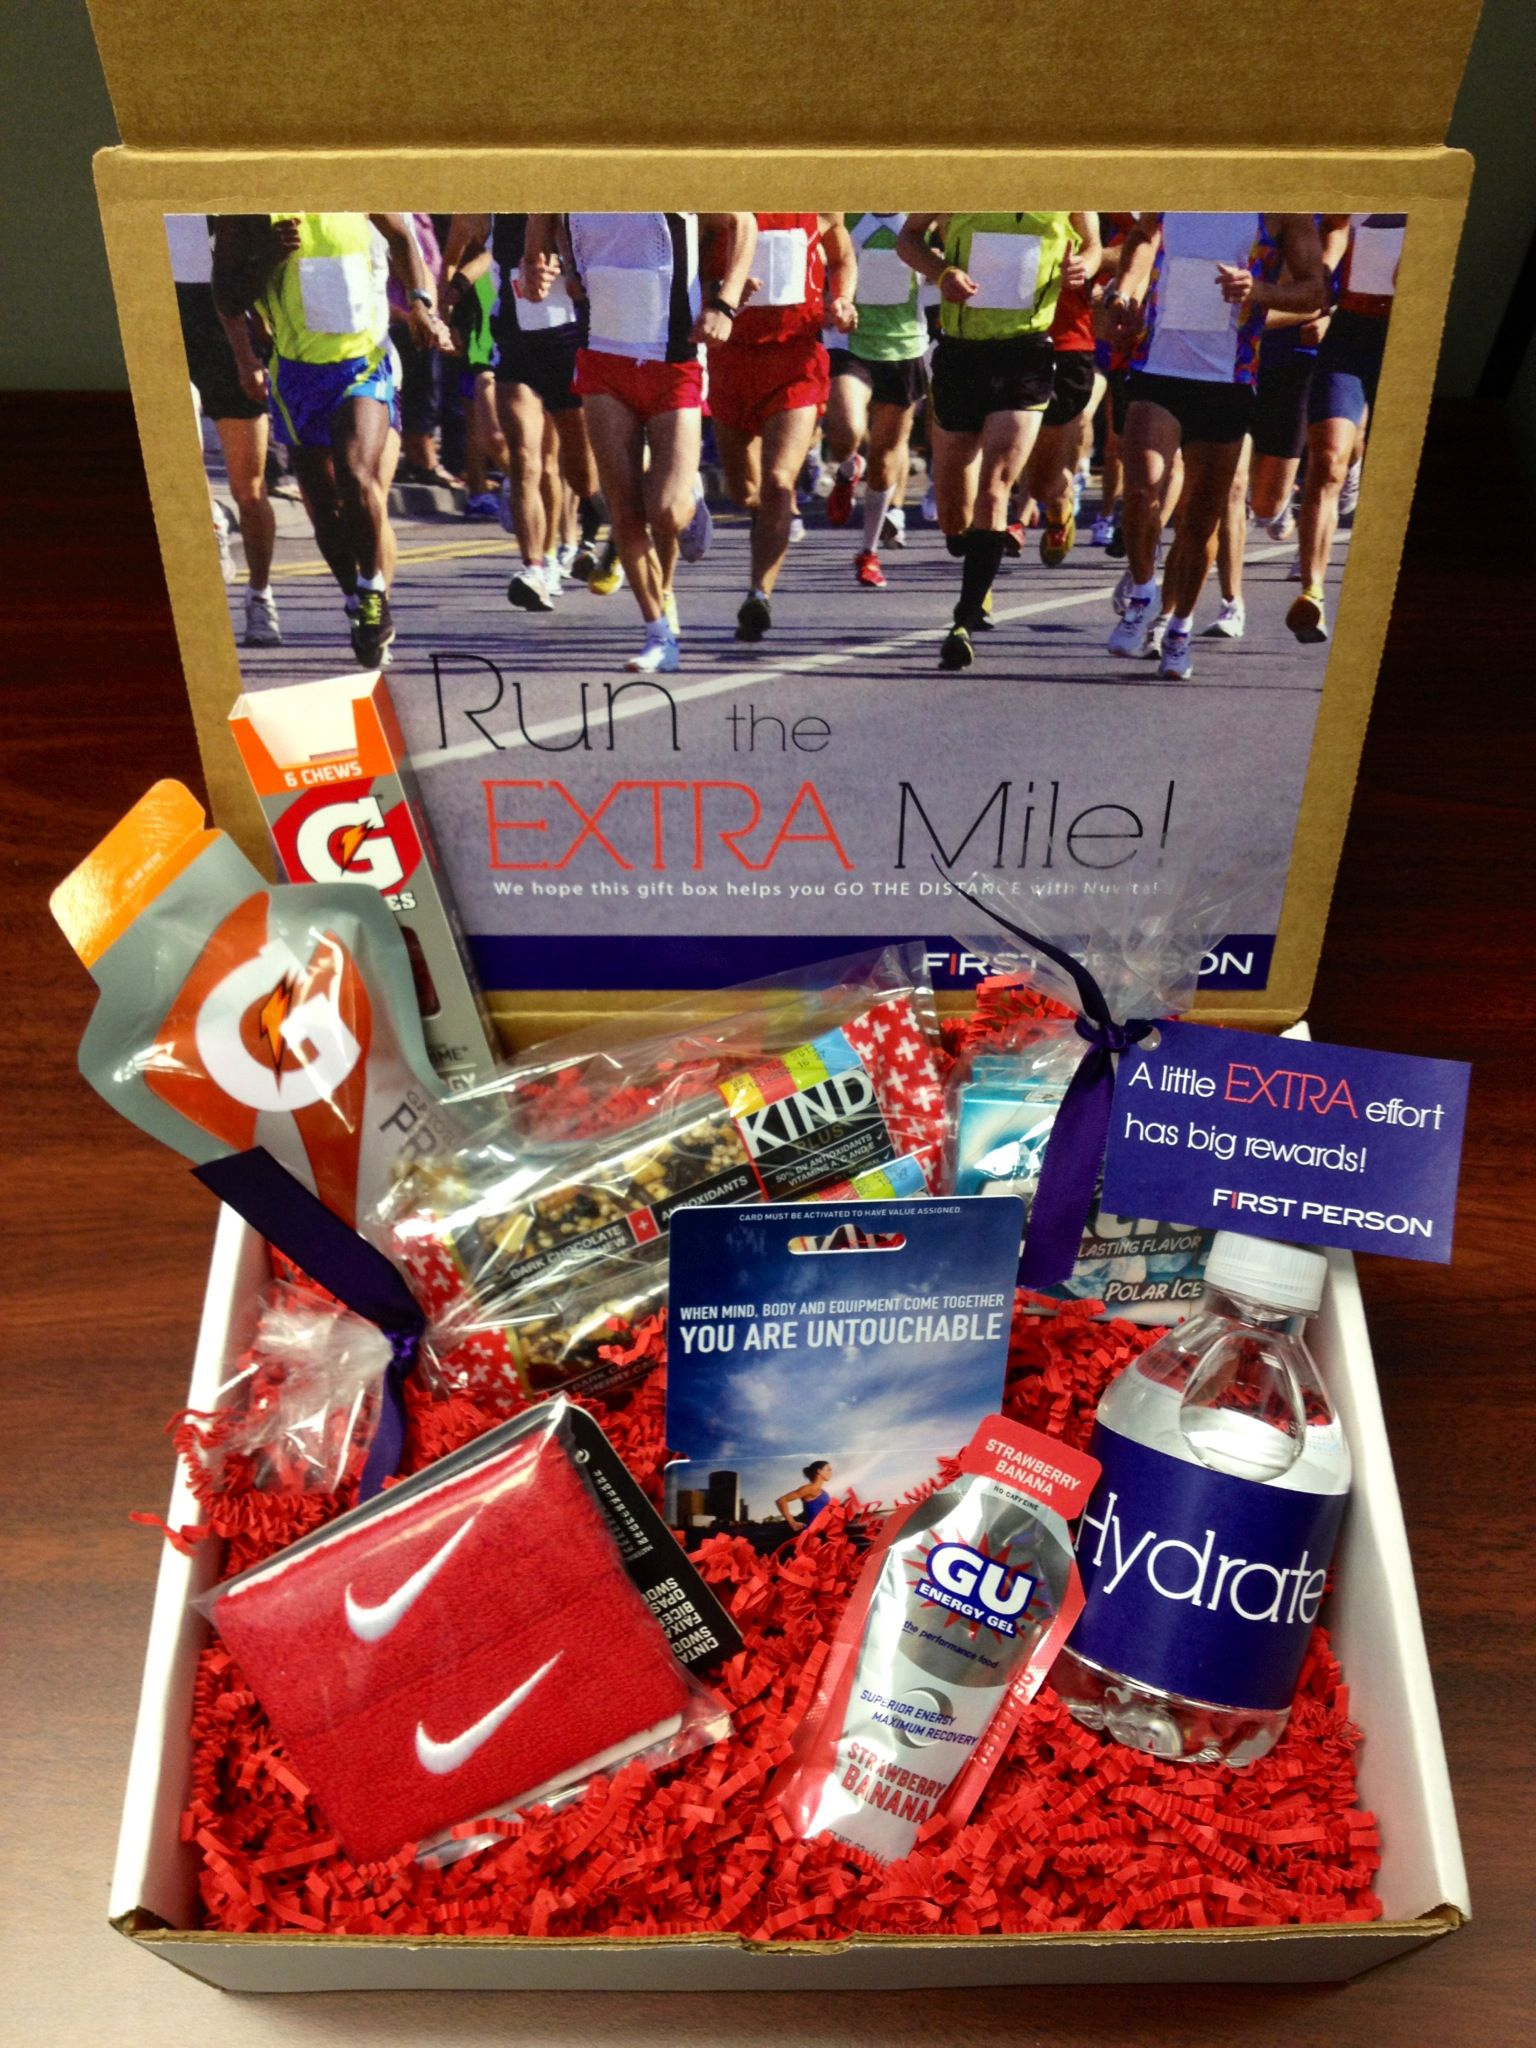 A gift for runners a diy creative box full of running goodies a gift for runners a diy creative box full of running goodies encourage them negle Choice Image